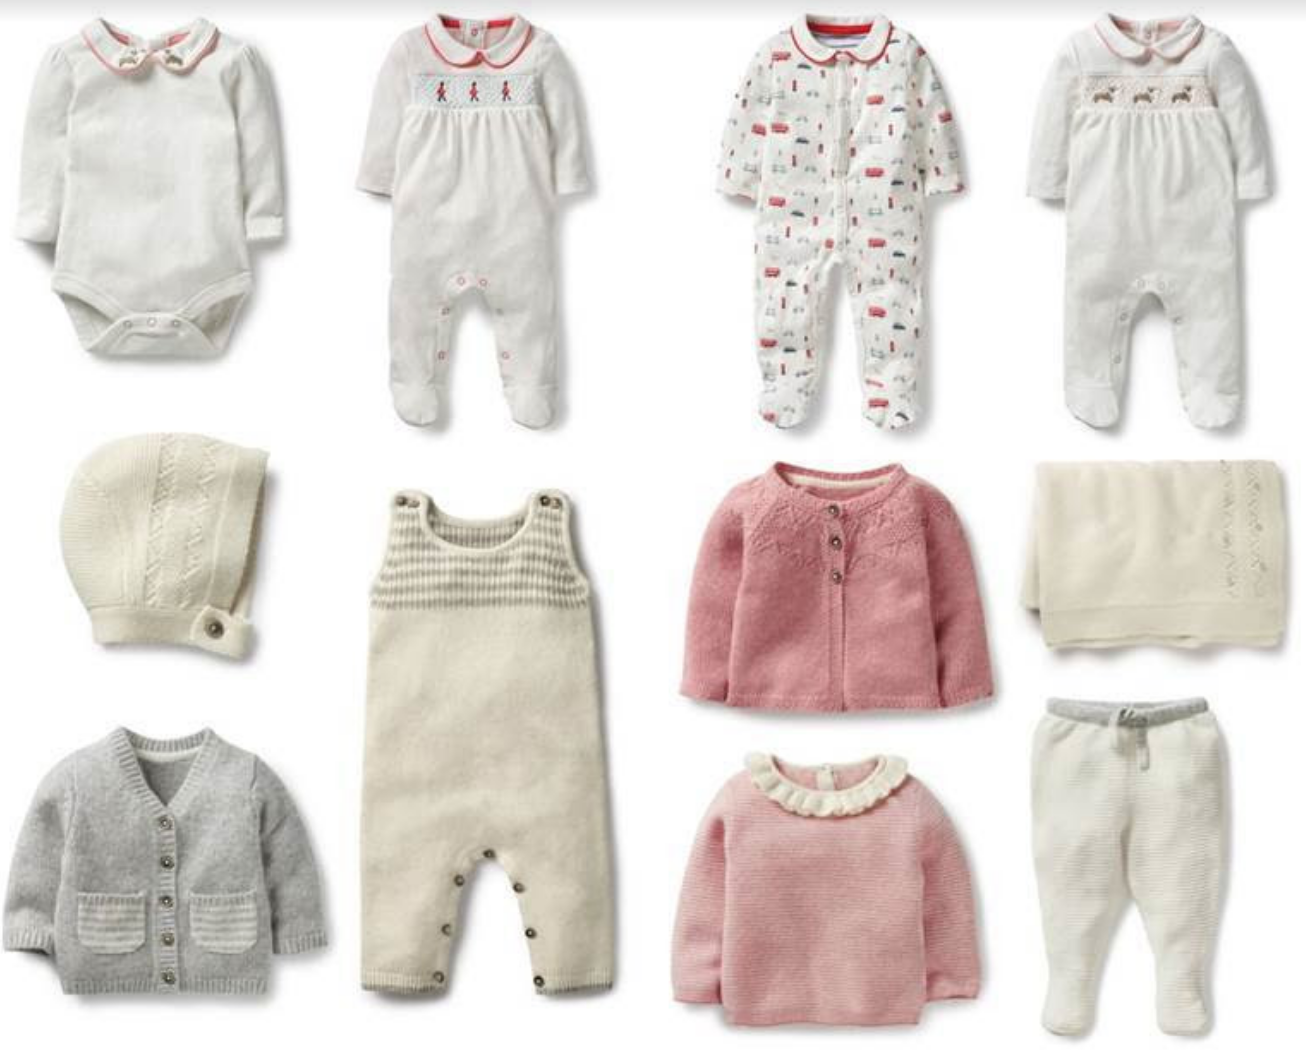 This 'Very British Baby' Collection From Boden Will Turn Every Baby Into a Royal Baby